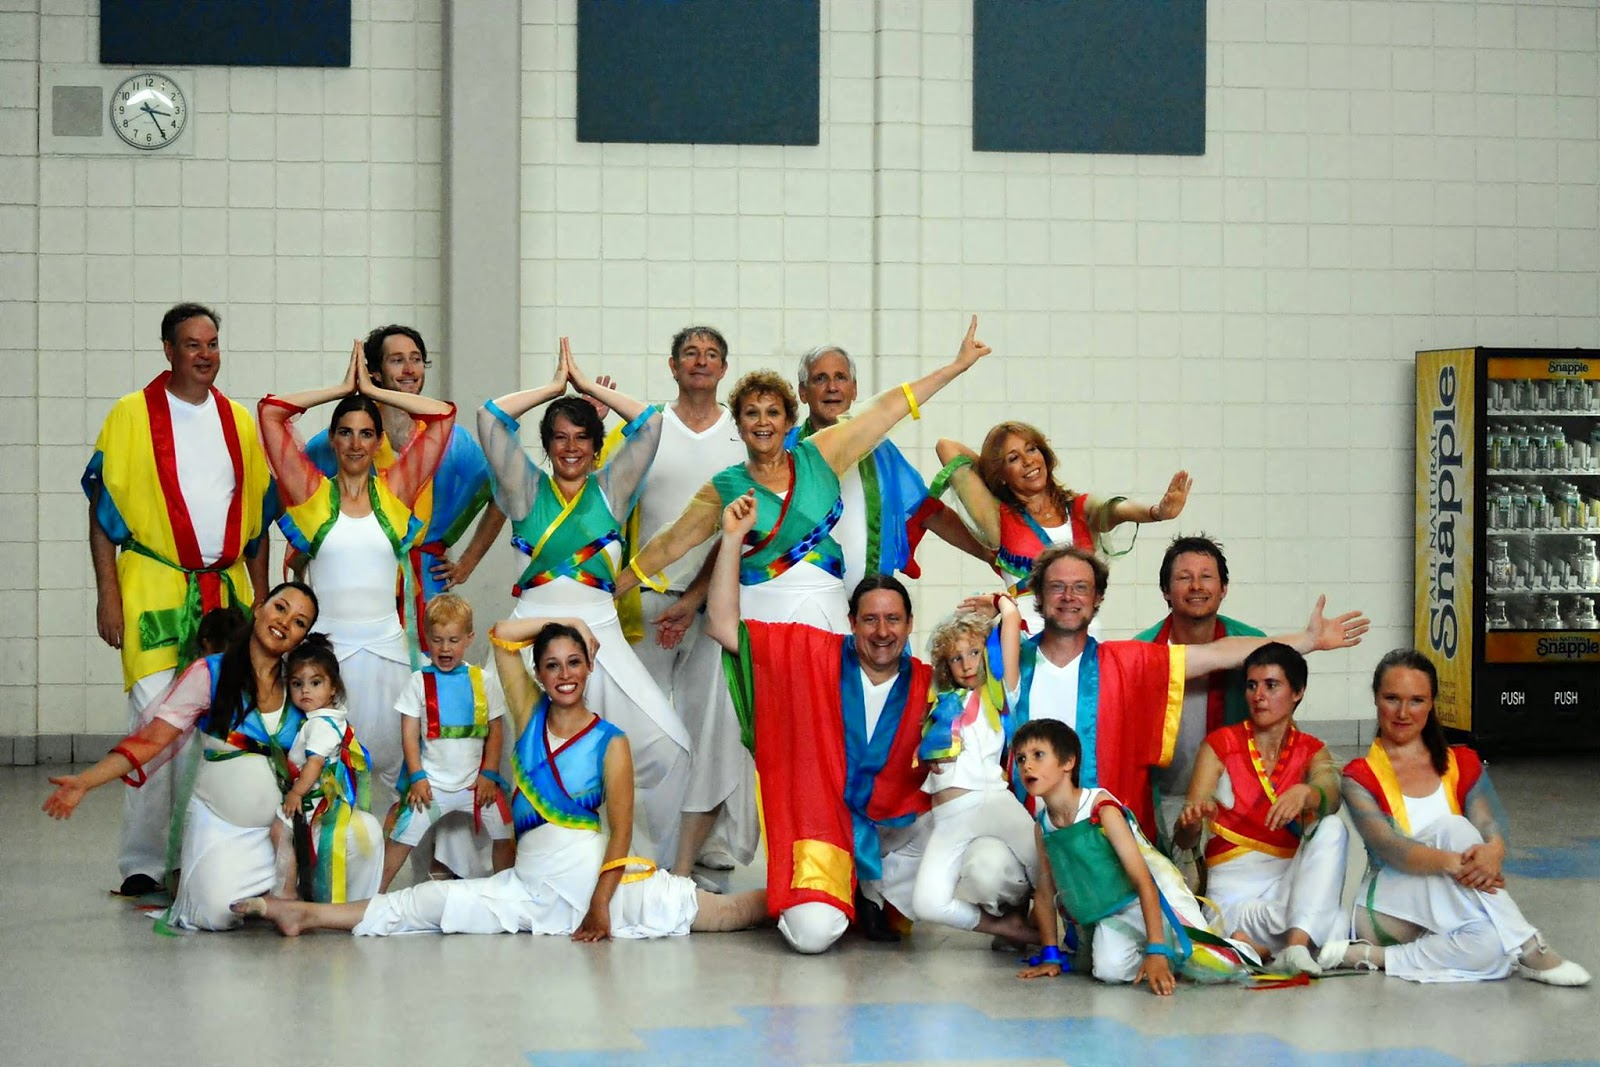 Tsegyalgar Dance Troupe performed July 13, 2014